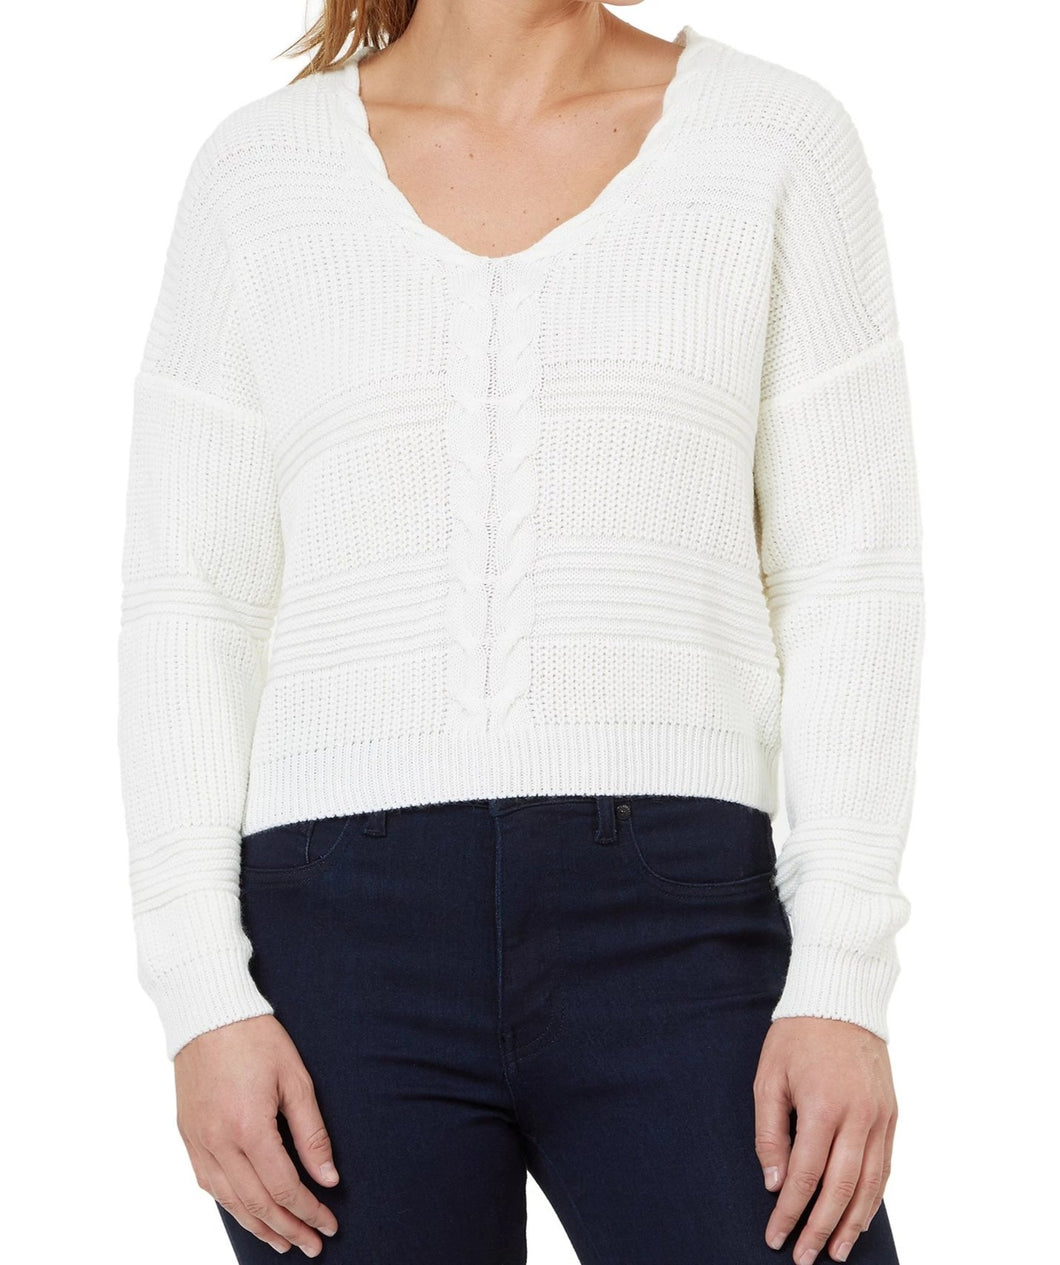 Numero Lace Up Cream Cropped Sweater